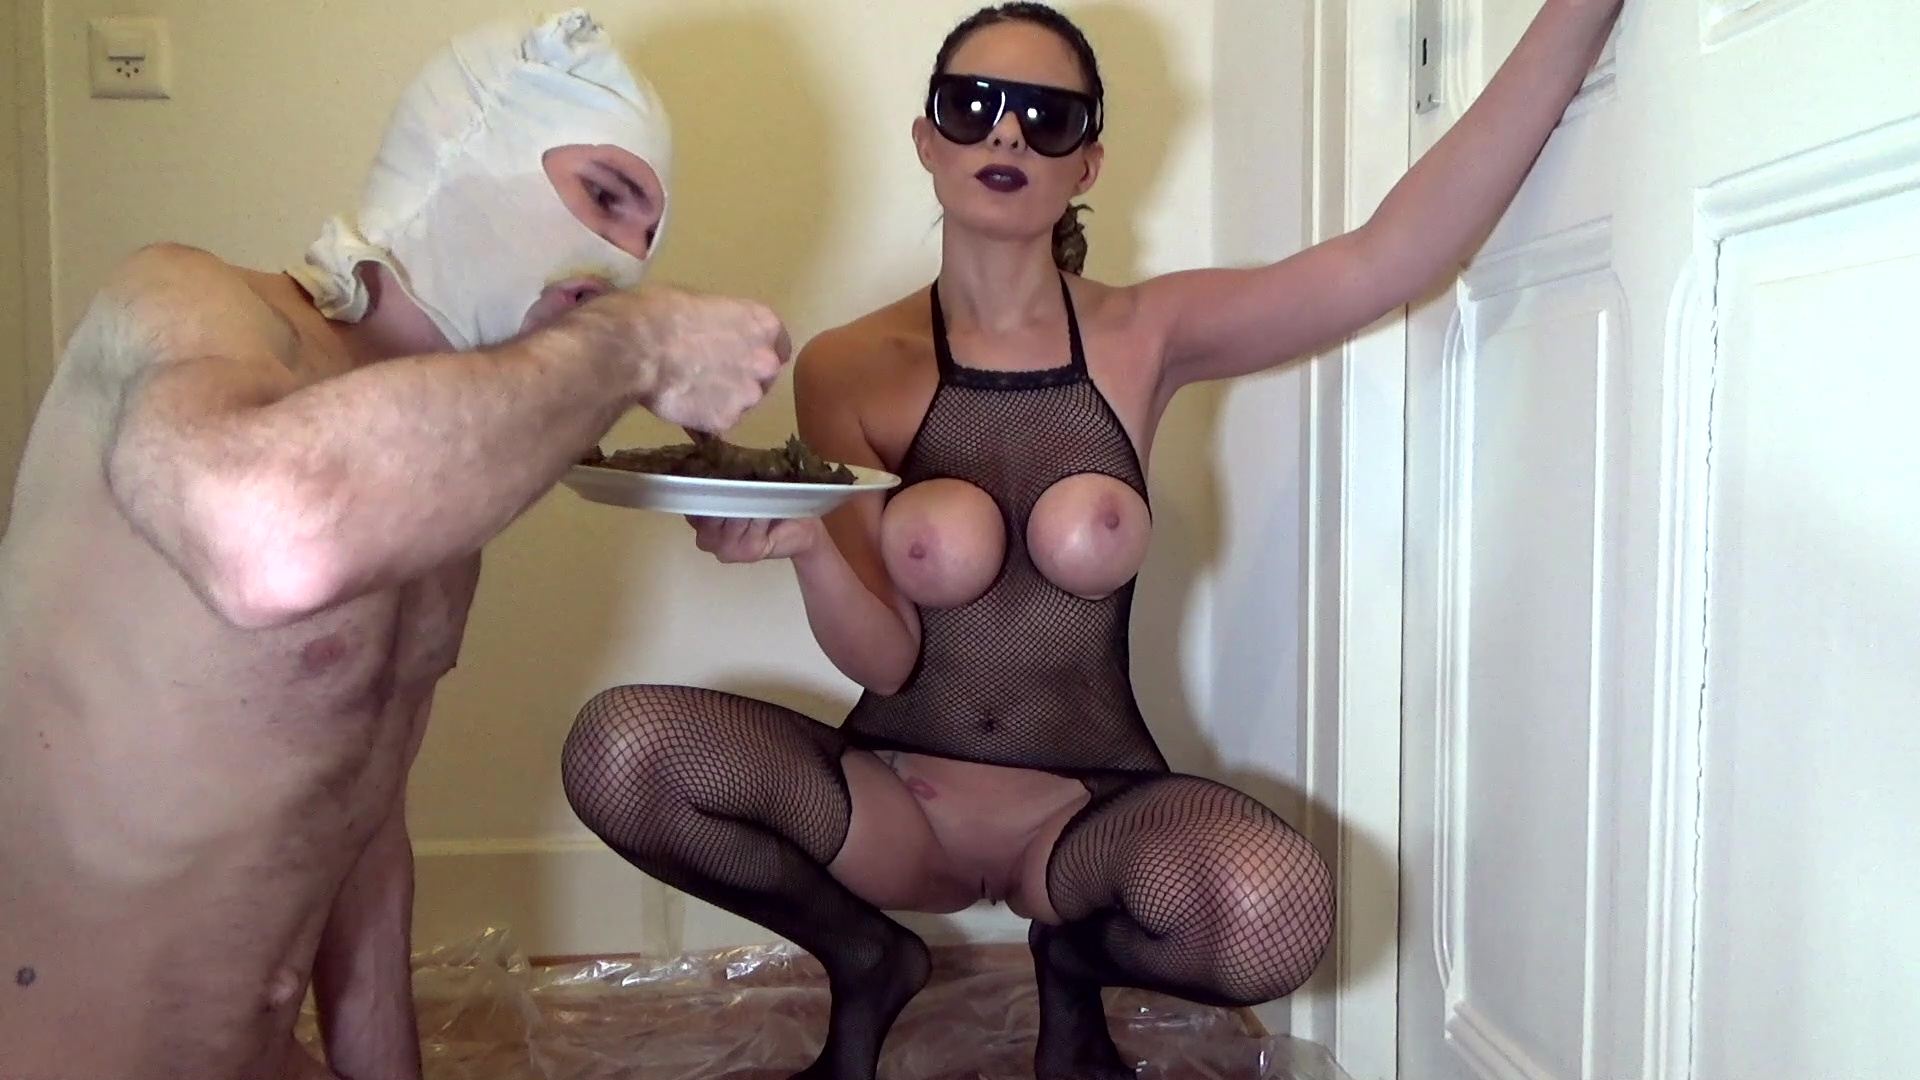 SG-Video - Eat My Elegant Luxurious Scat By Top New Babe Lila